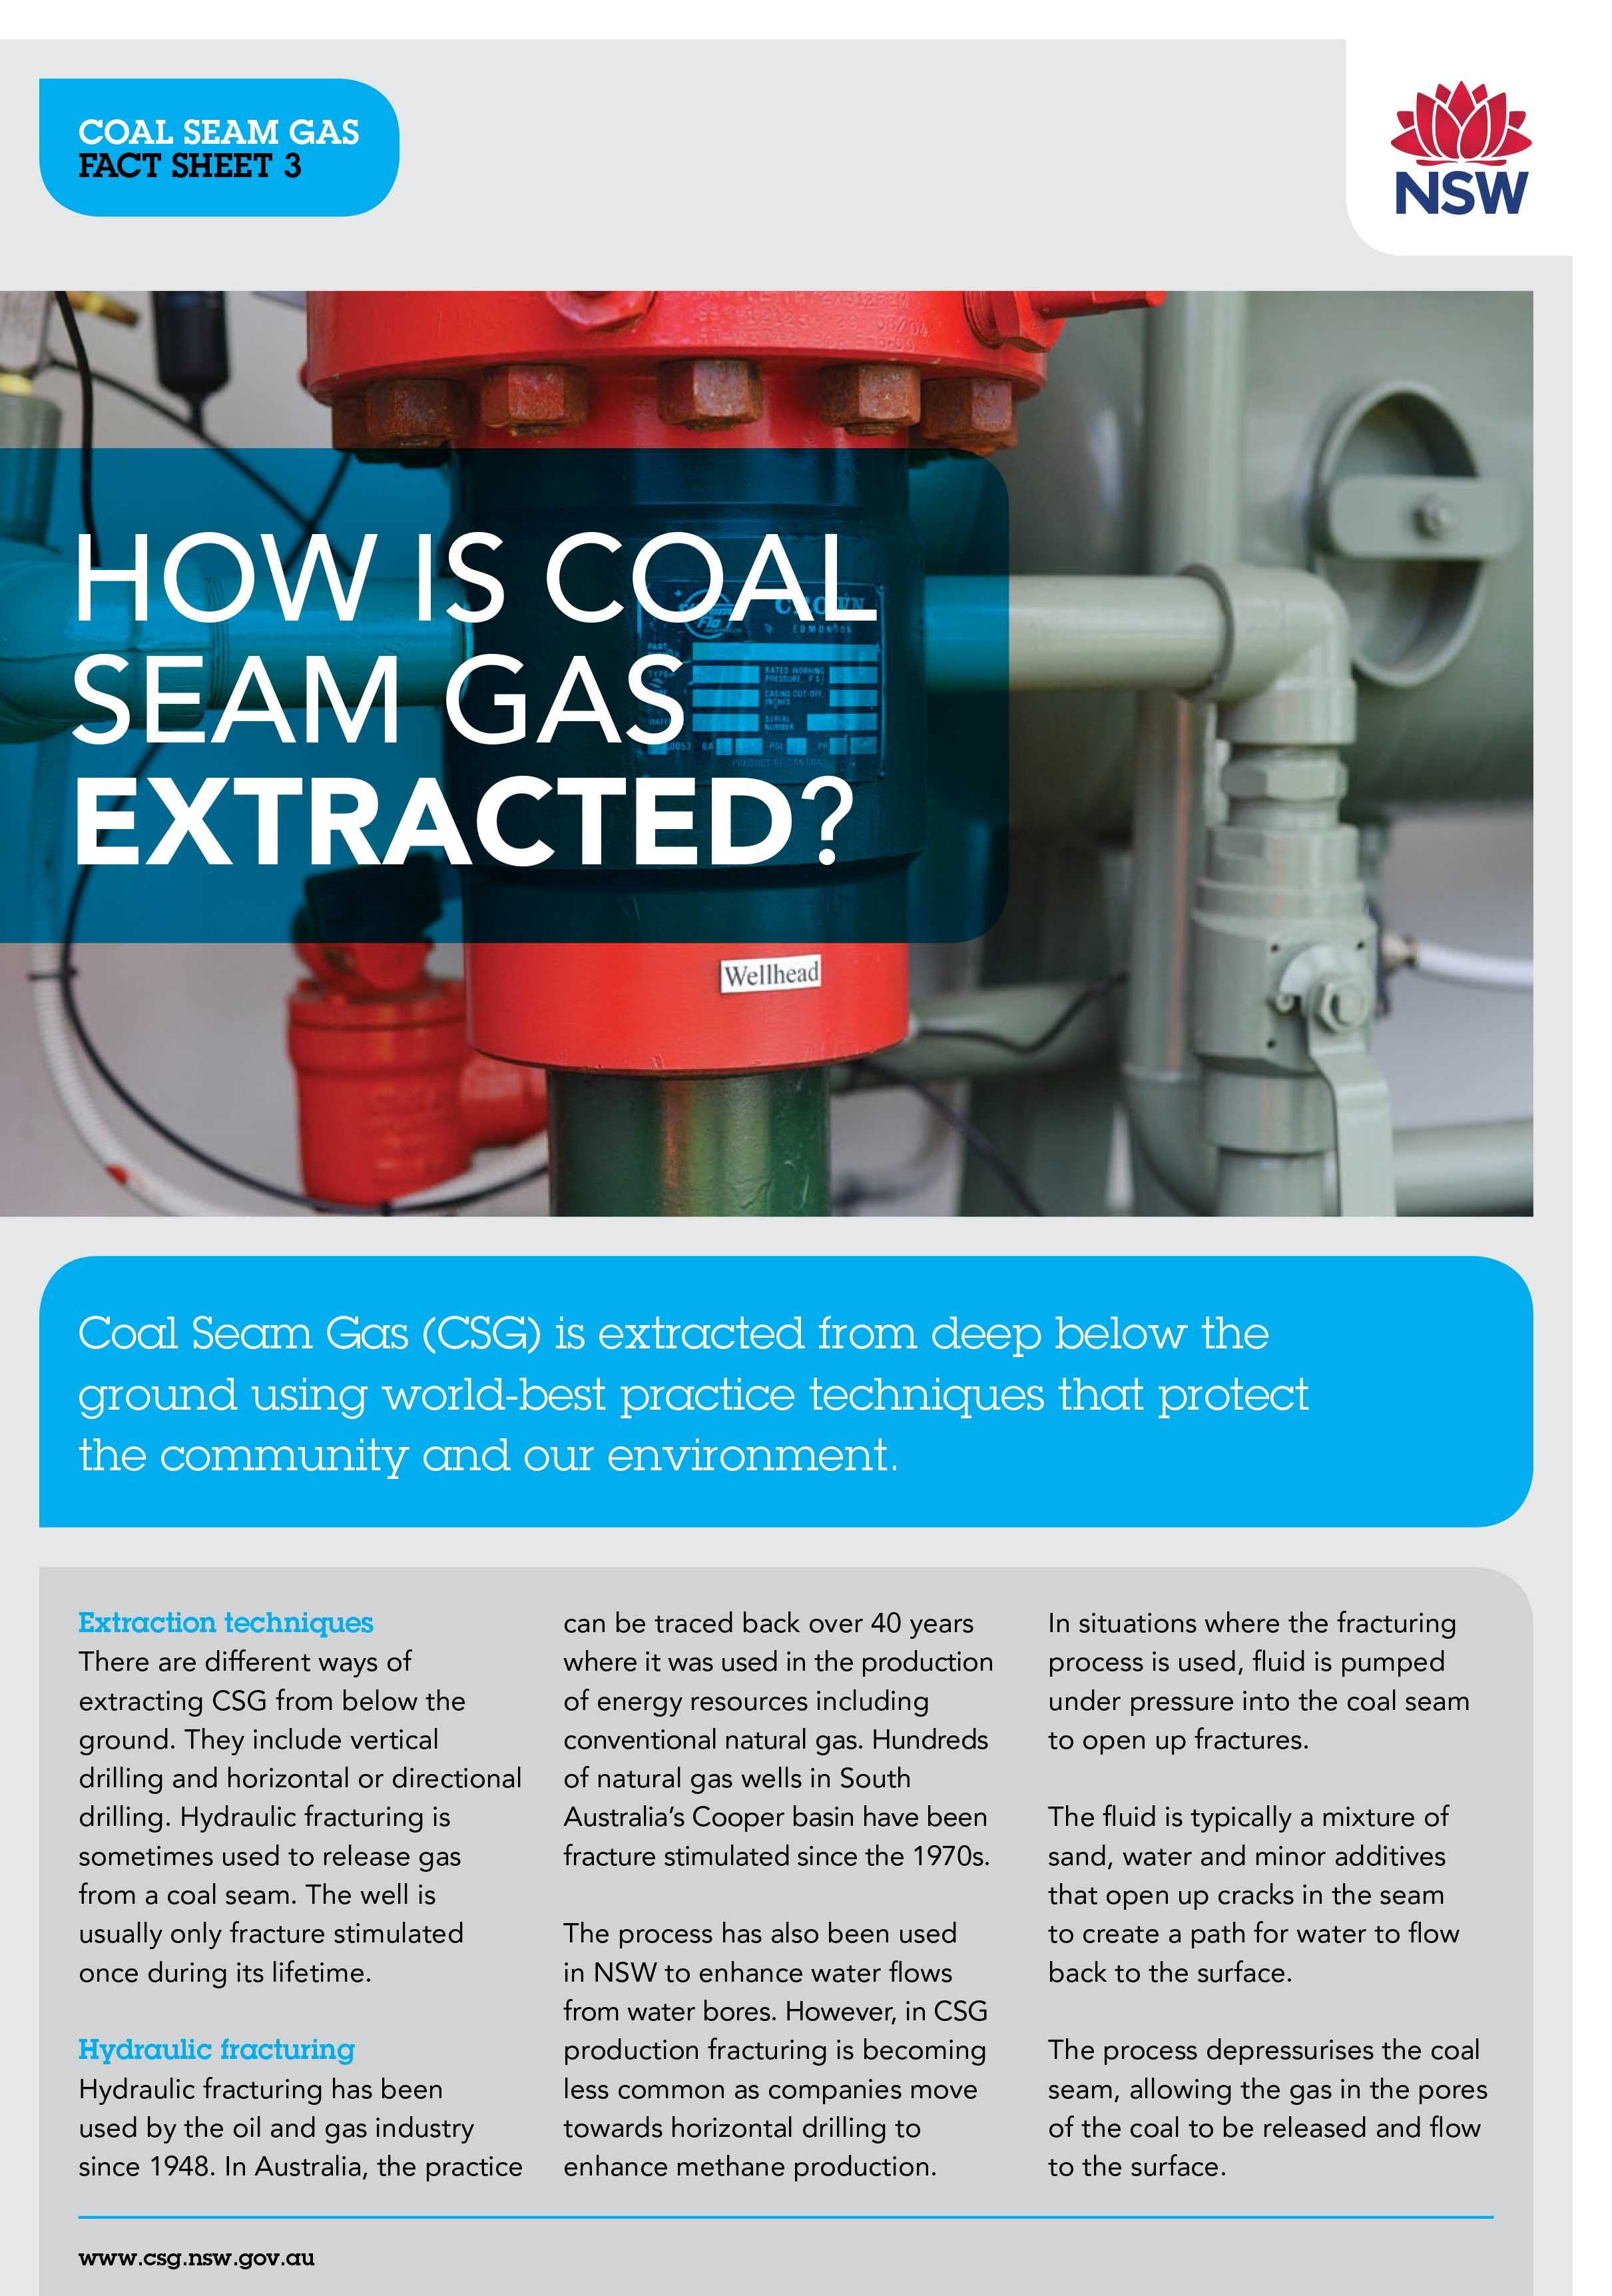 Coal Seam Gas Csg Is Extracted From Deep Below The Ground Using World Best Practice Techniques That Protect The Community And O Coal Seam Facts Gas